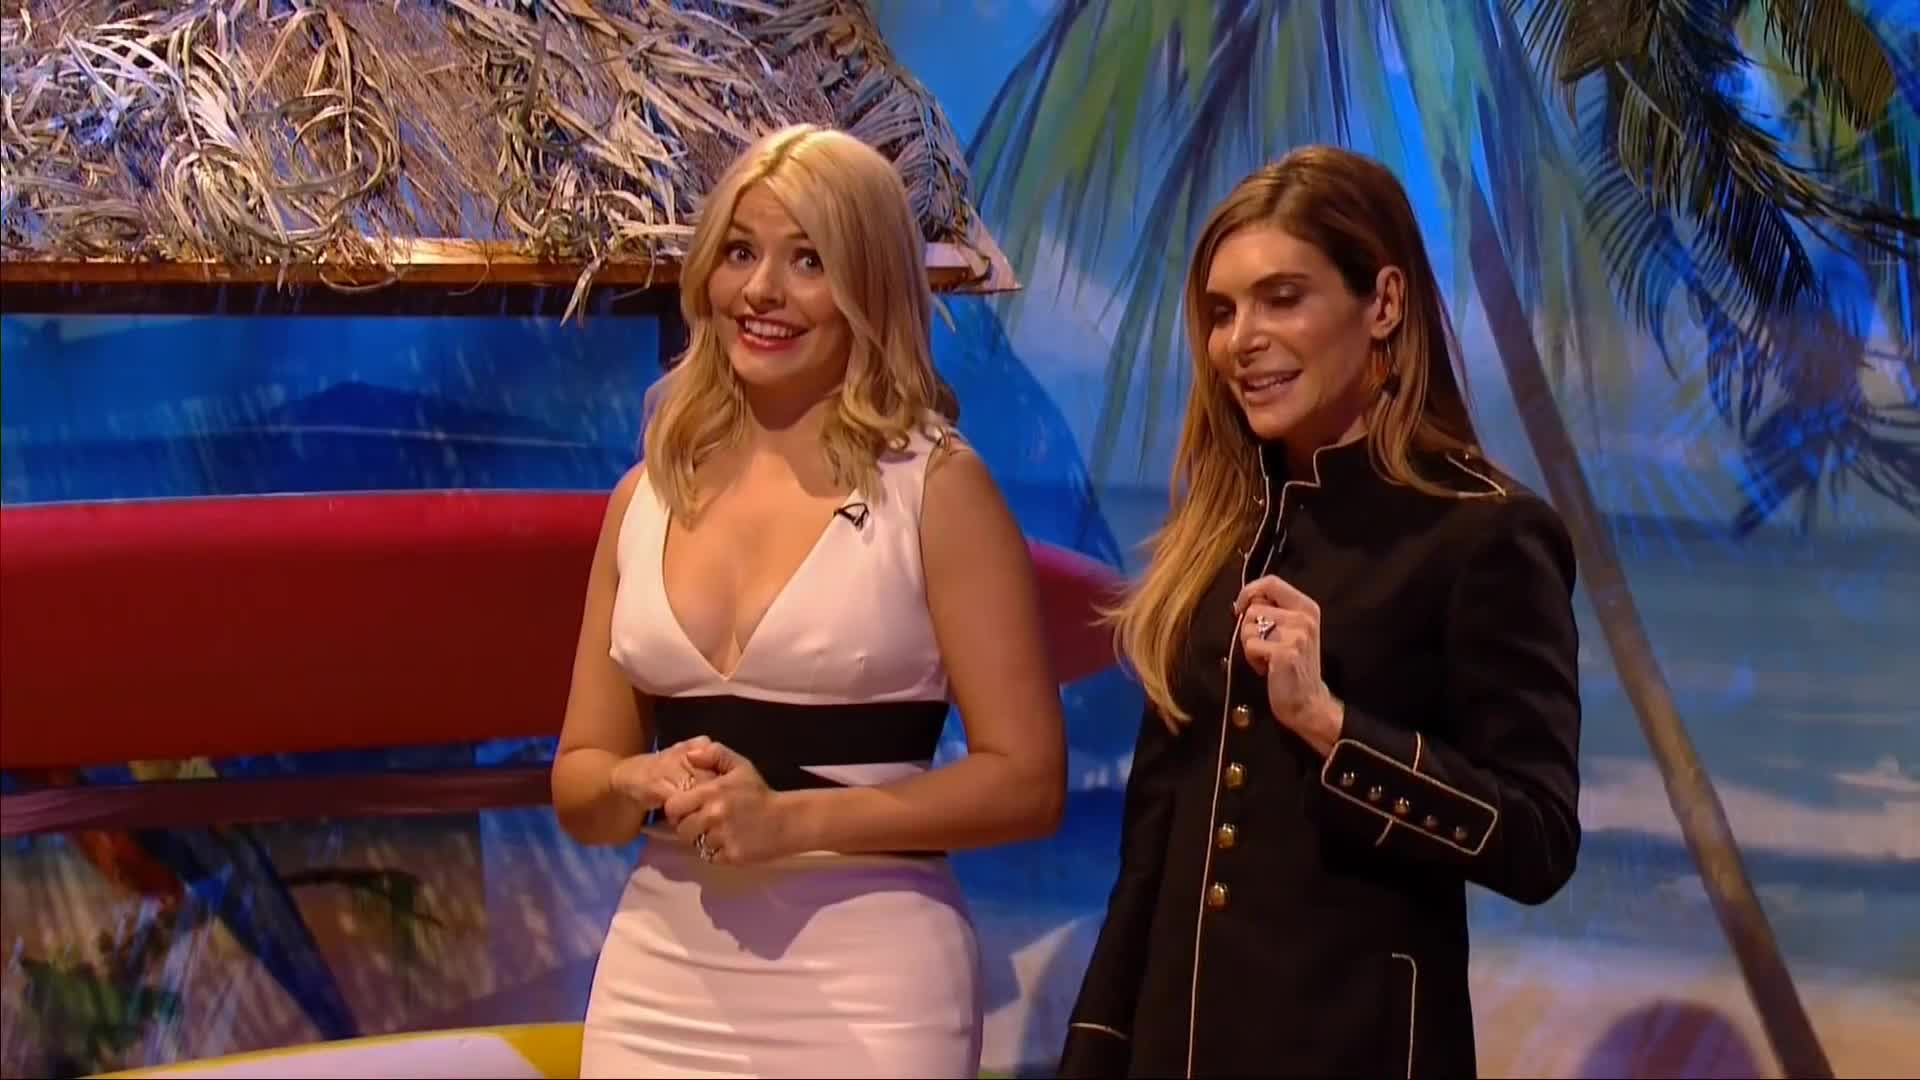 CelebGfys, TheHollyWilloughby, hdcelebgifs, Holly Willoughby (reddit) GIFs